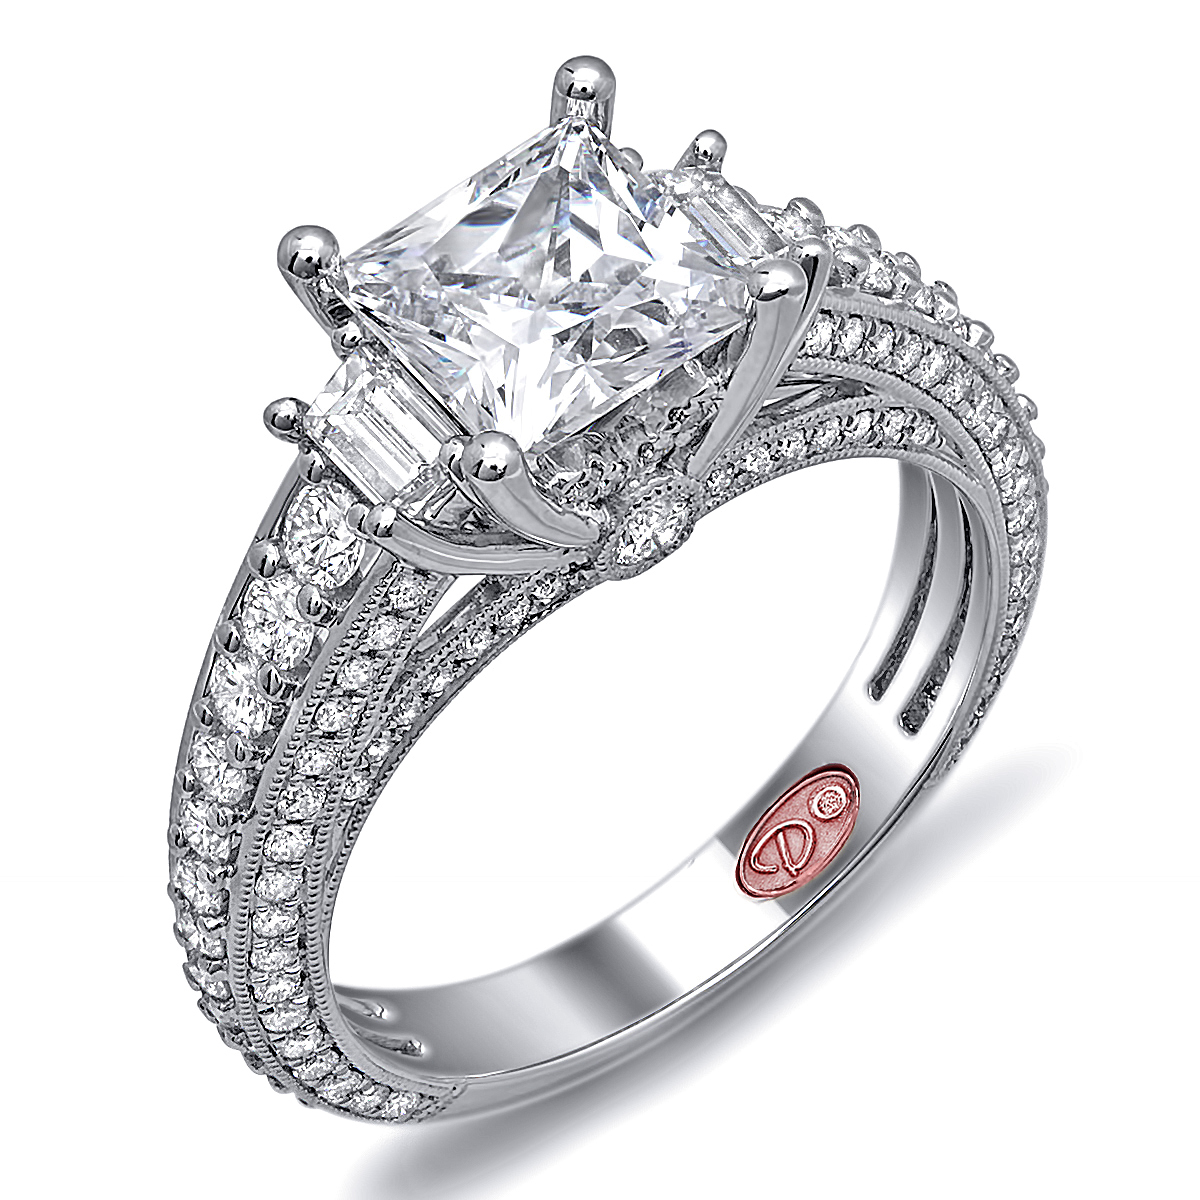 Designer Engagement Rings In Mystic